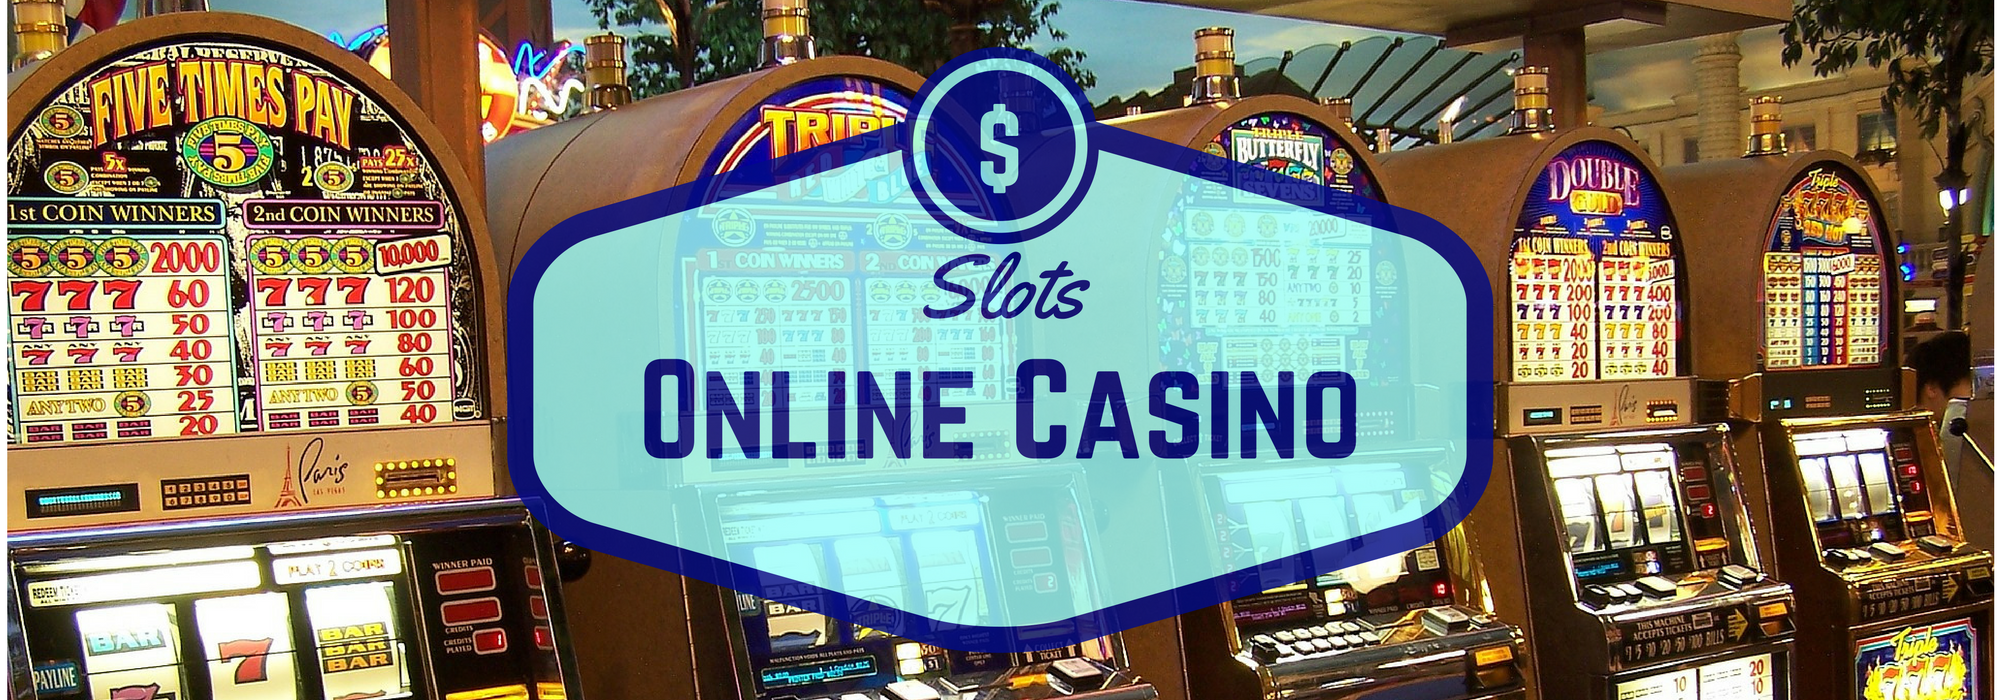 Take 5 - Play Free Fruit Slots - Legal Online Casino! OnlineCasino Deutschland